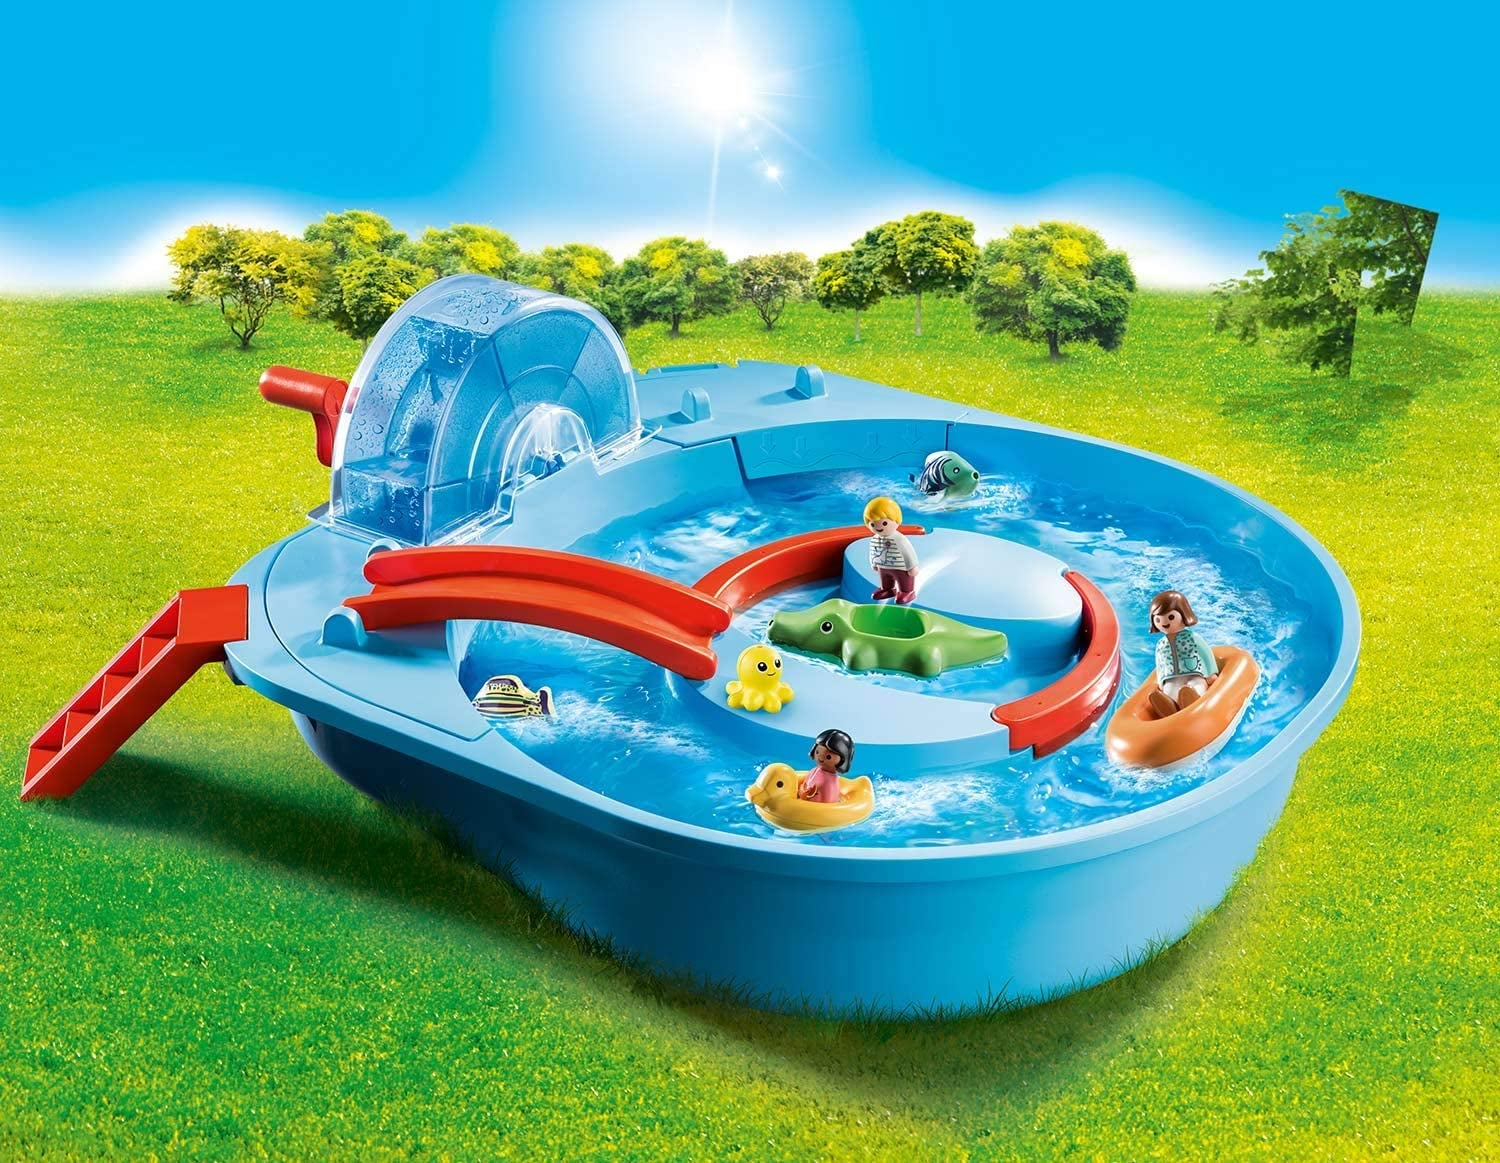 Blue and red plastic Playmobil water toy